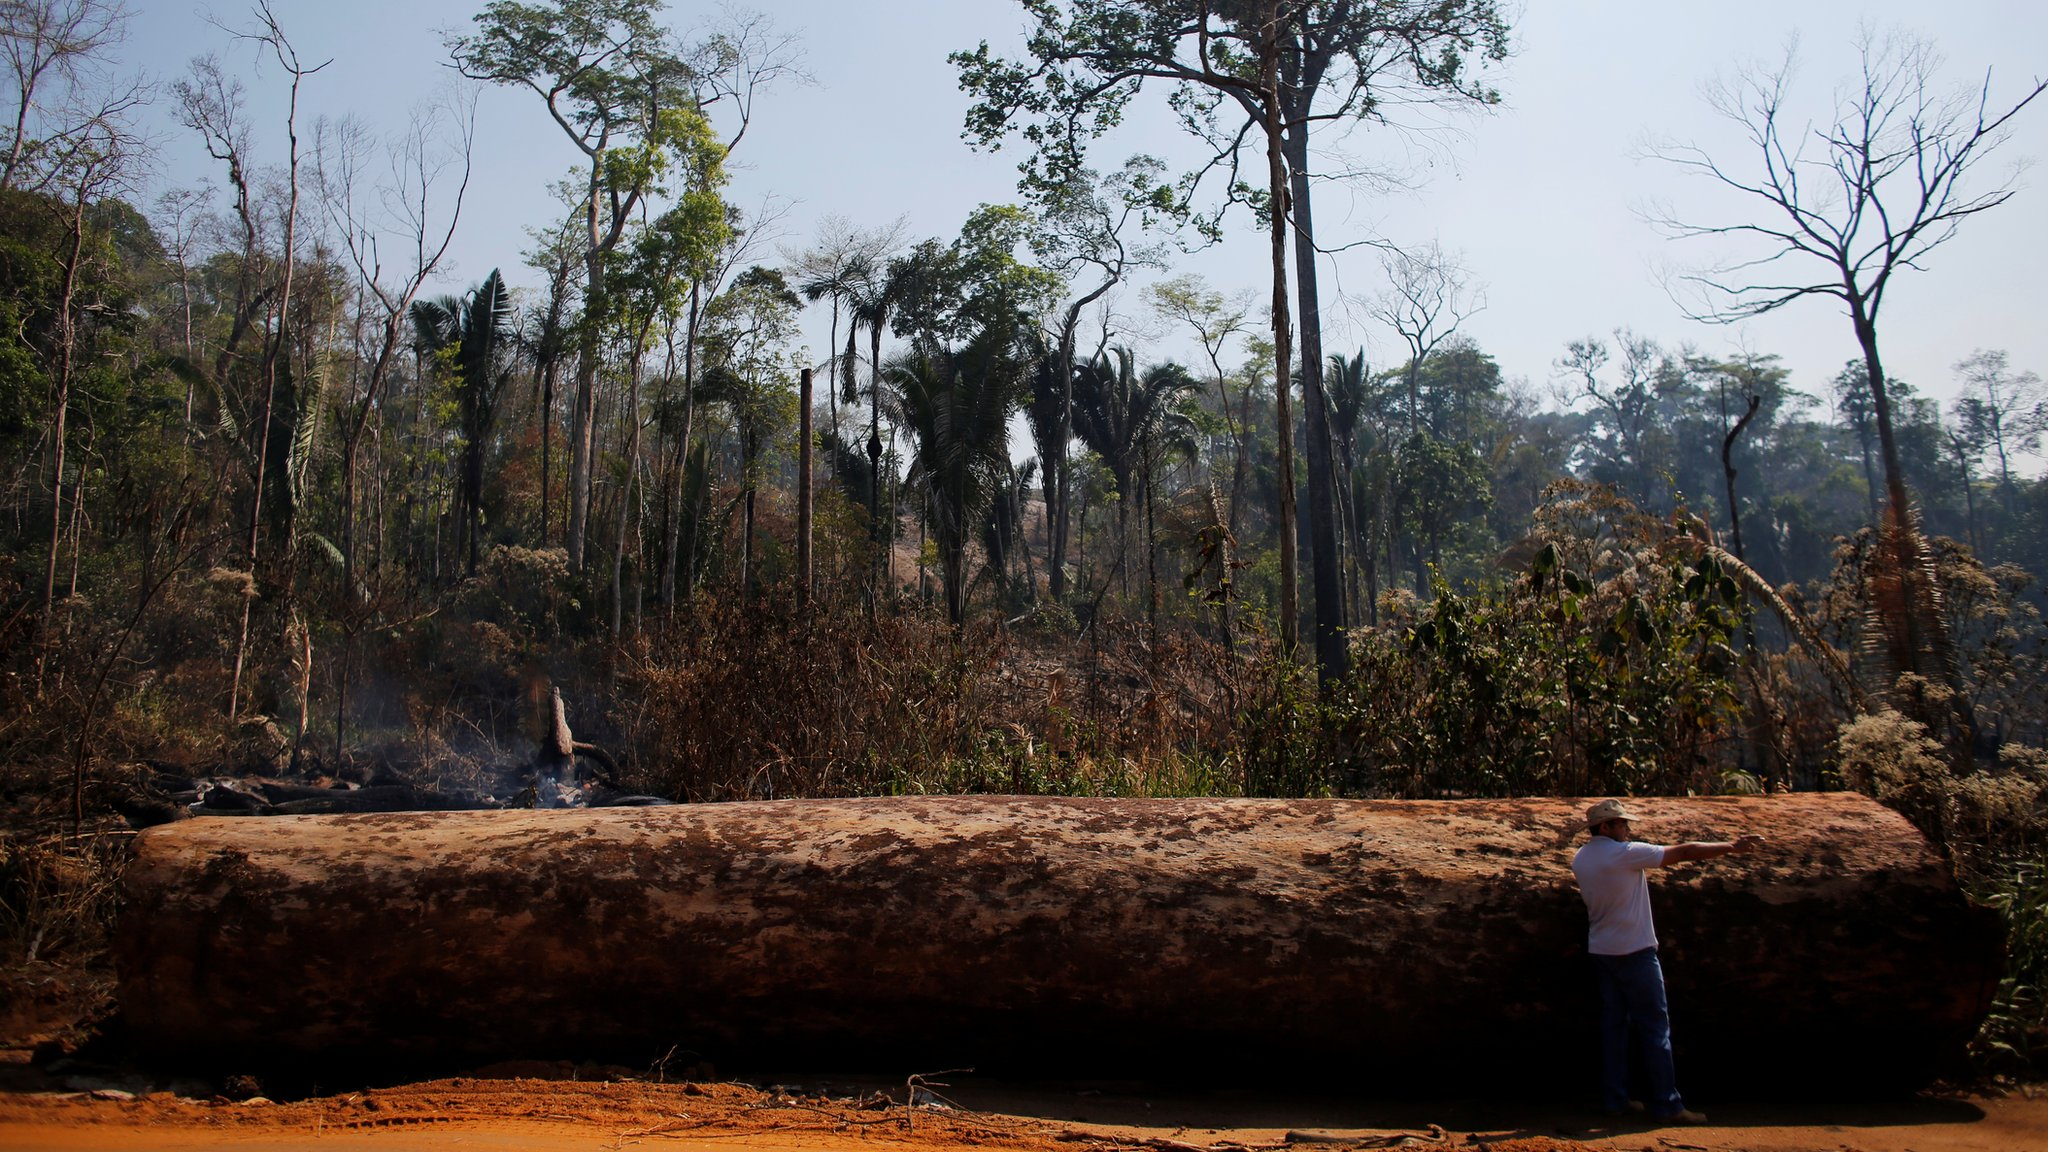 A man points next to a tree extracted illegally from the Amazon rainforest in 2015